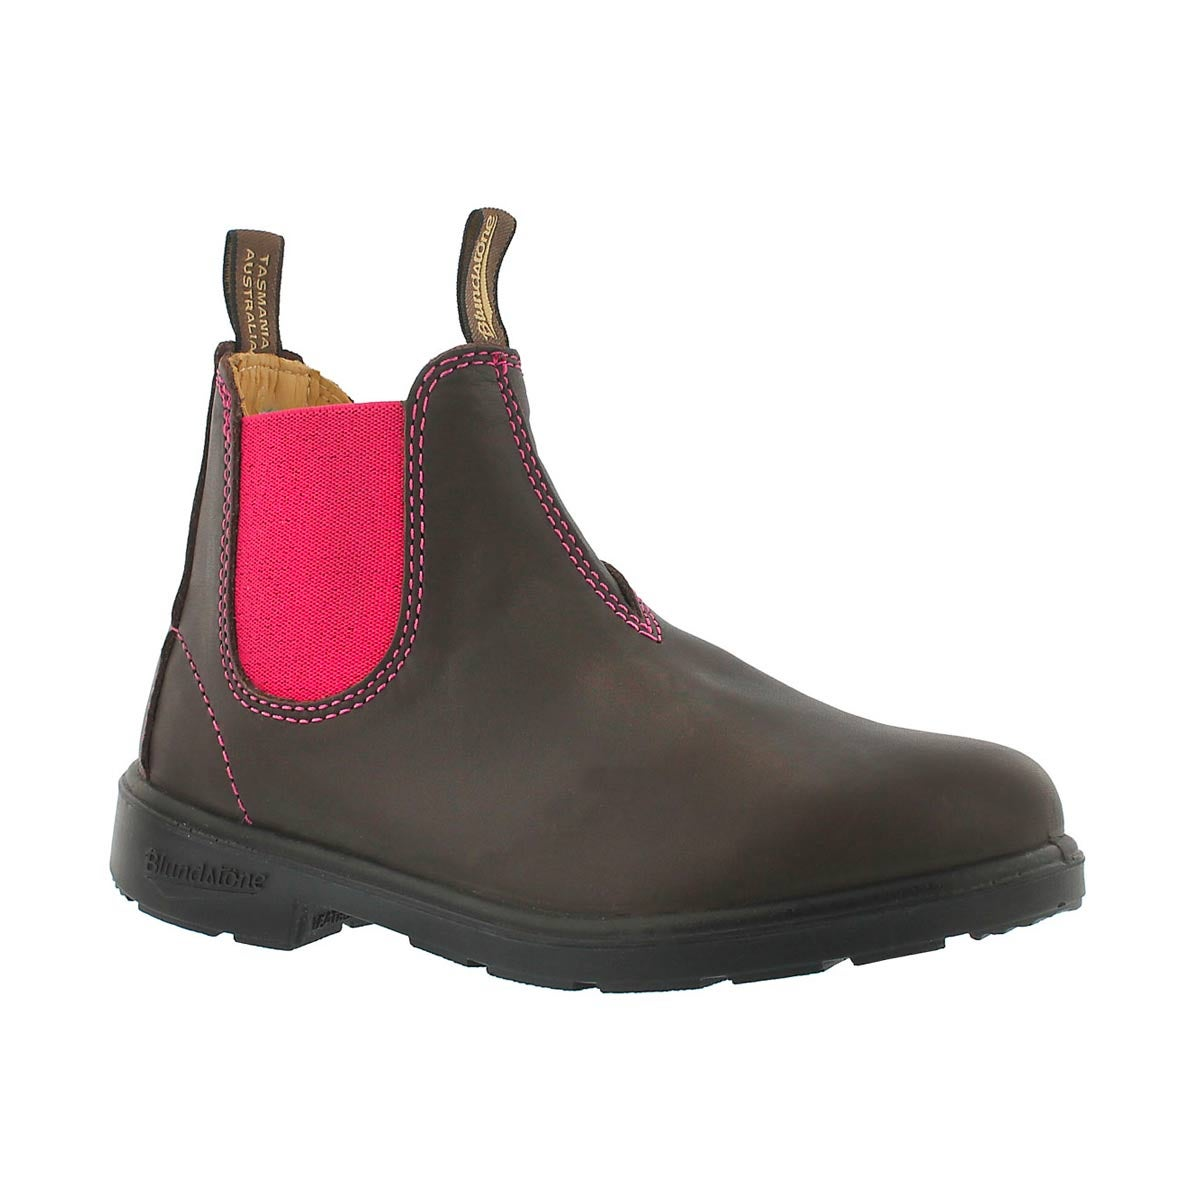 Kids' BLUNNIES brown/pink pull-on boots -UK SIZING